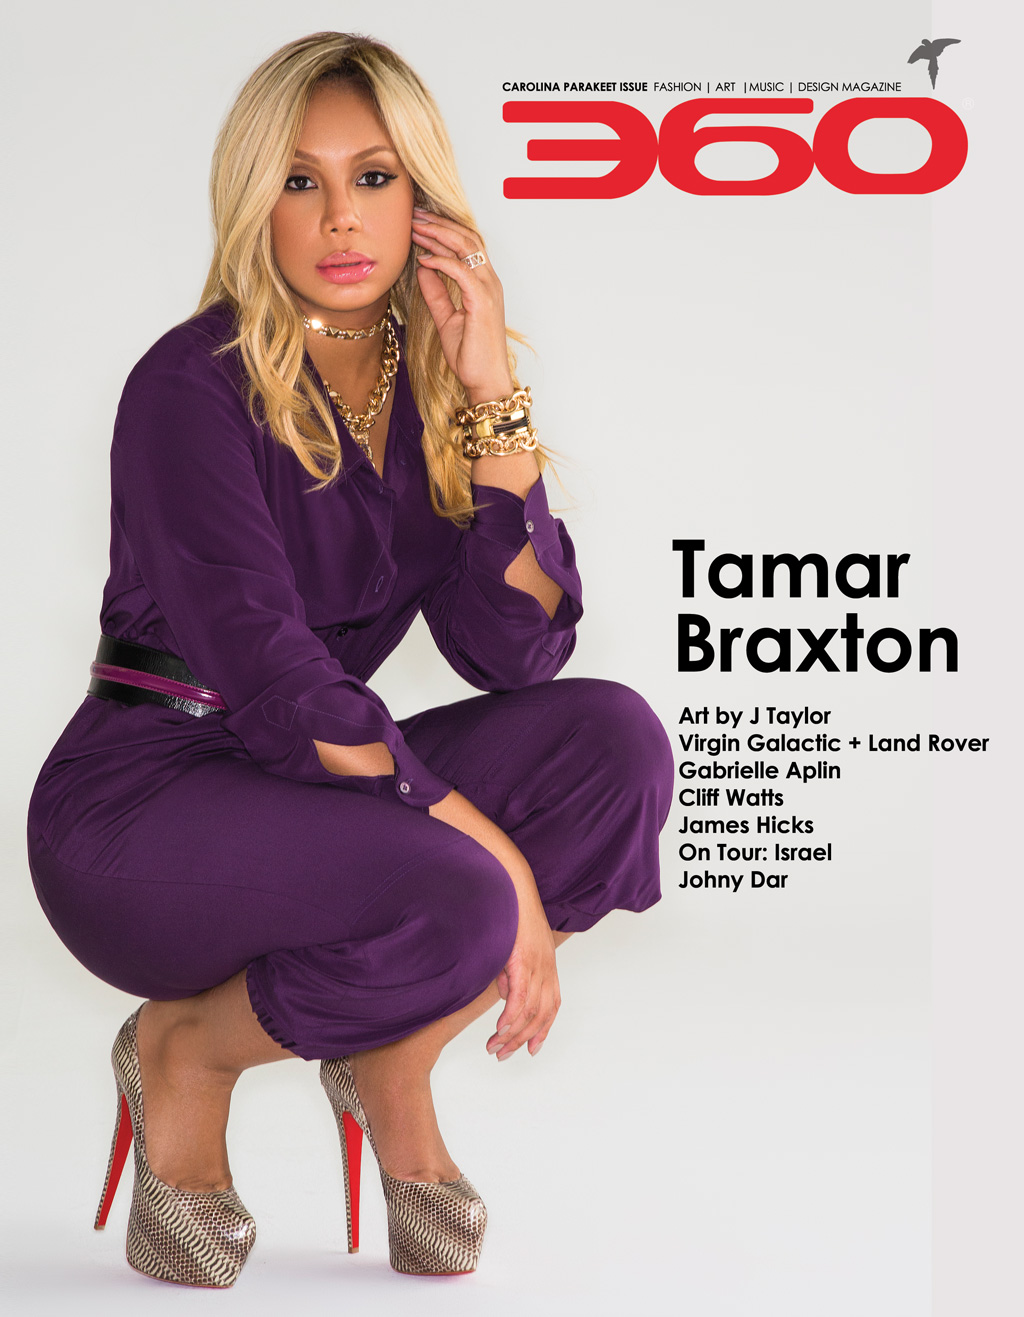 360 Issue 13 – Tamar Braxton